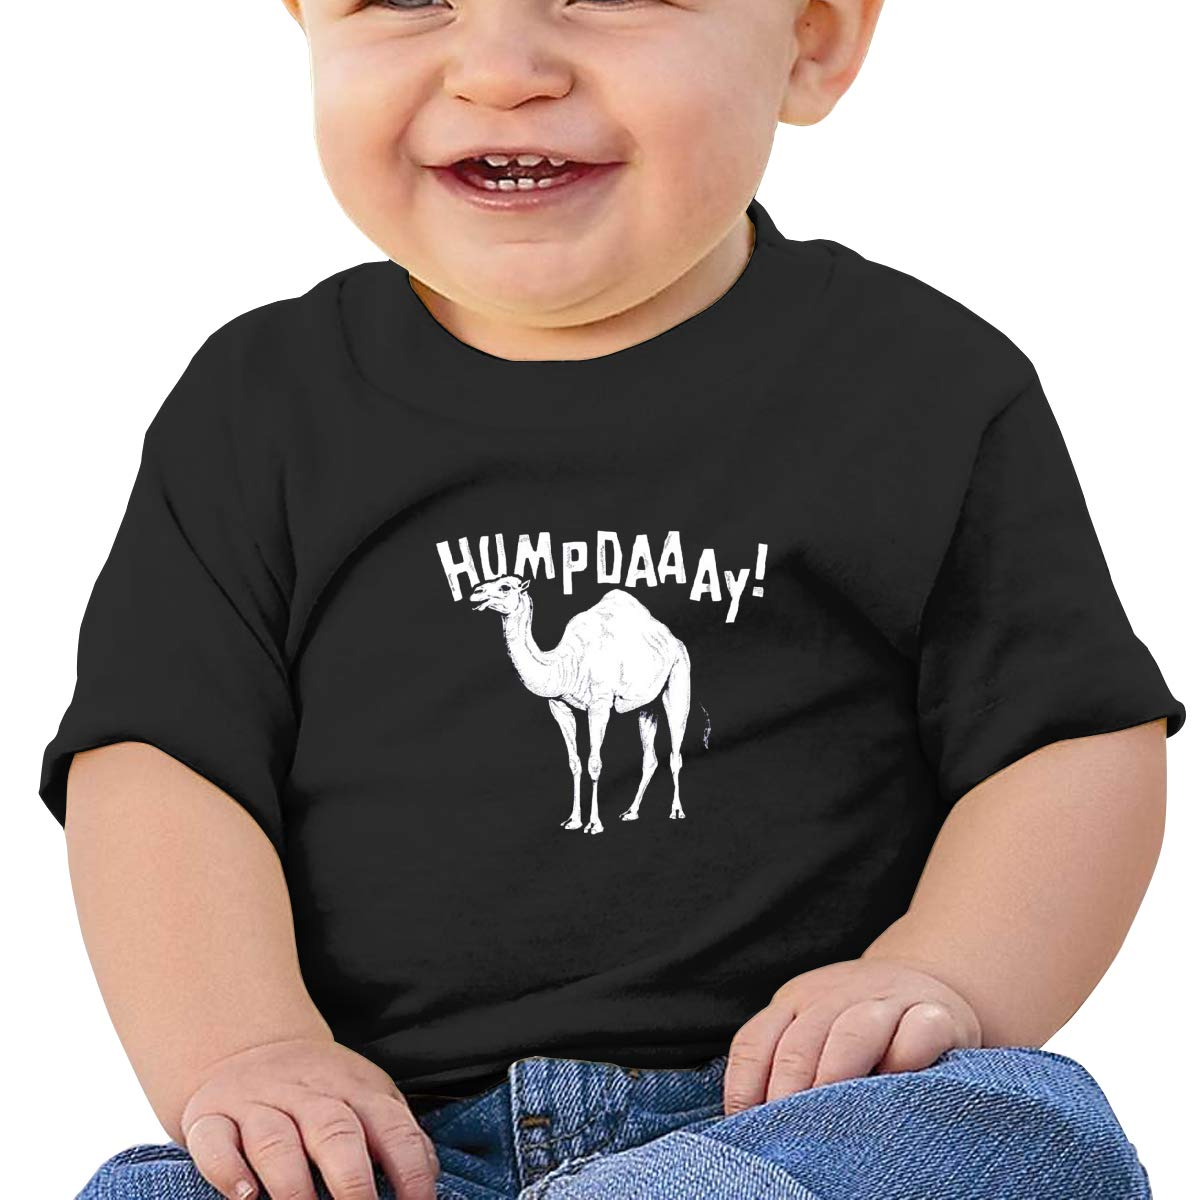 Baby T-Shirt Toddler Cotton T Shirts Soft Graphic Tees for 6M-2T Baby JVNSS Camel Commercial Hump Day